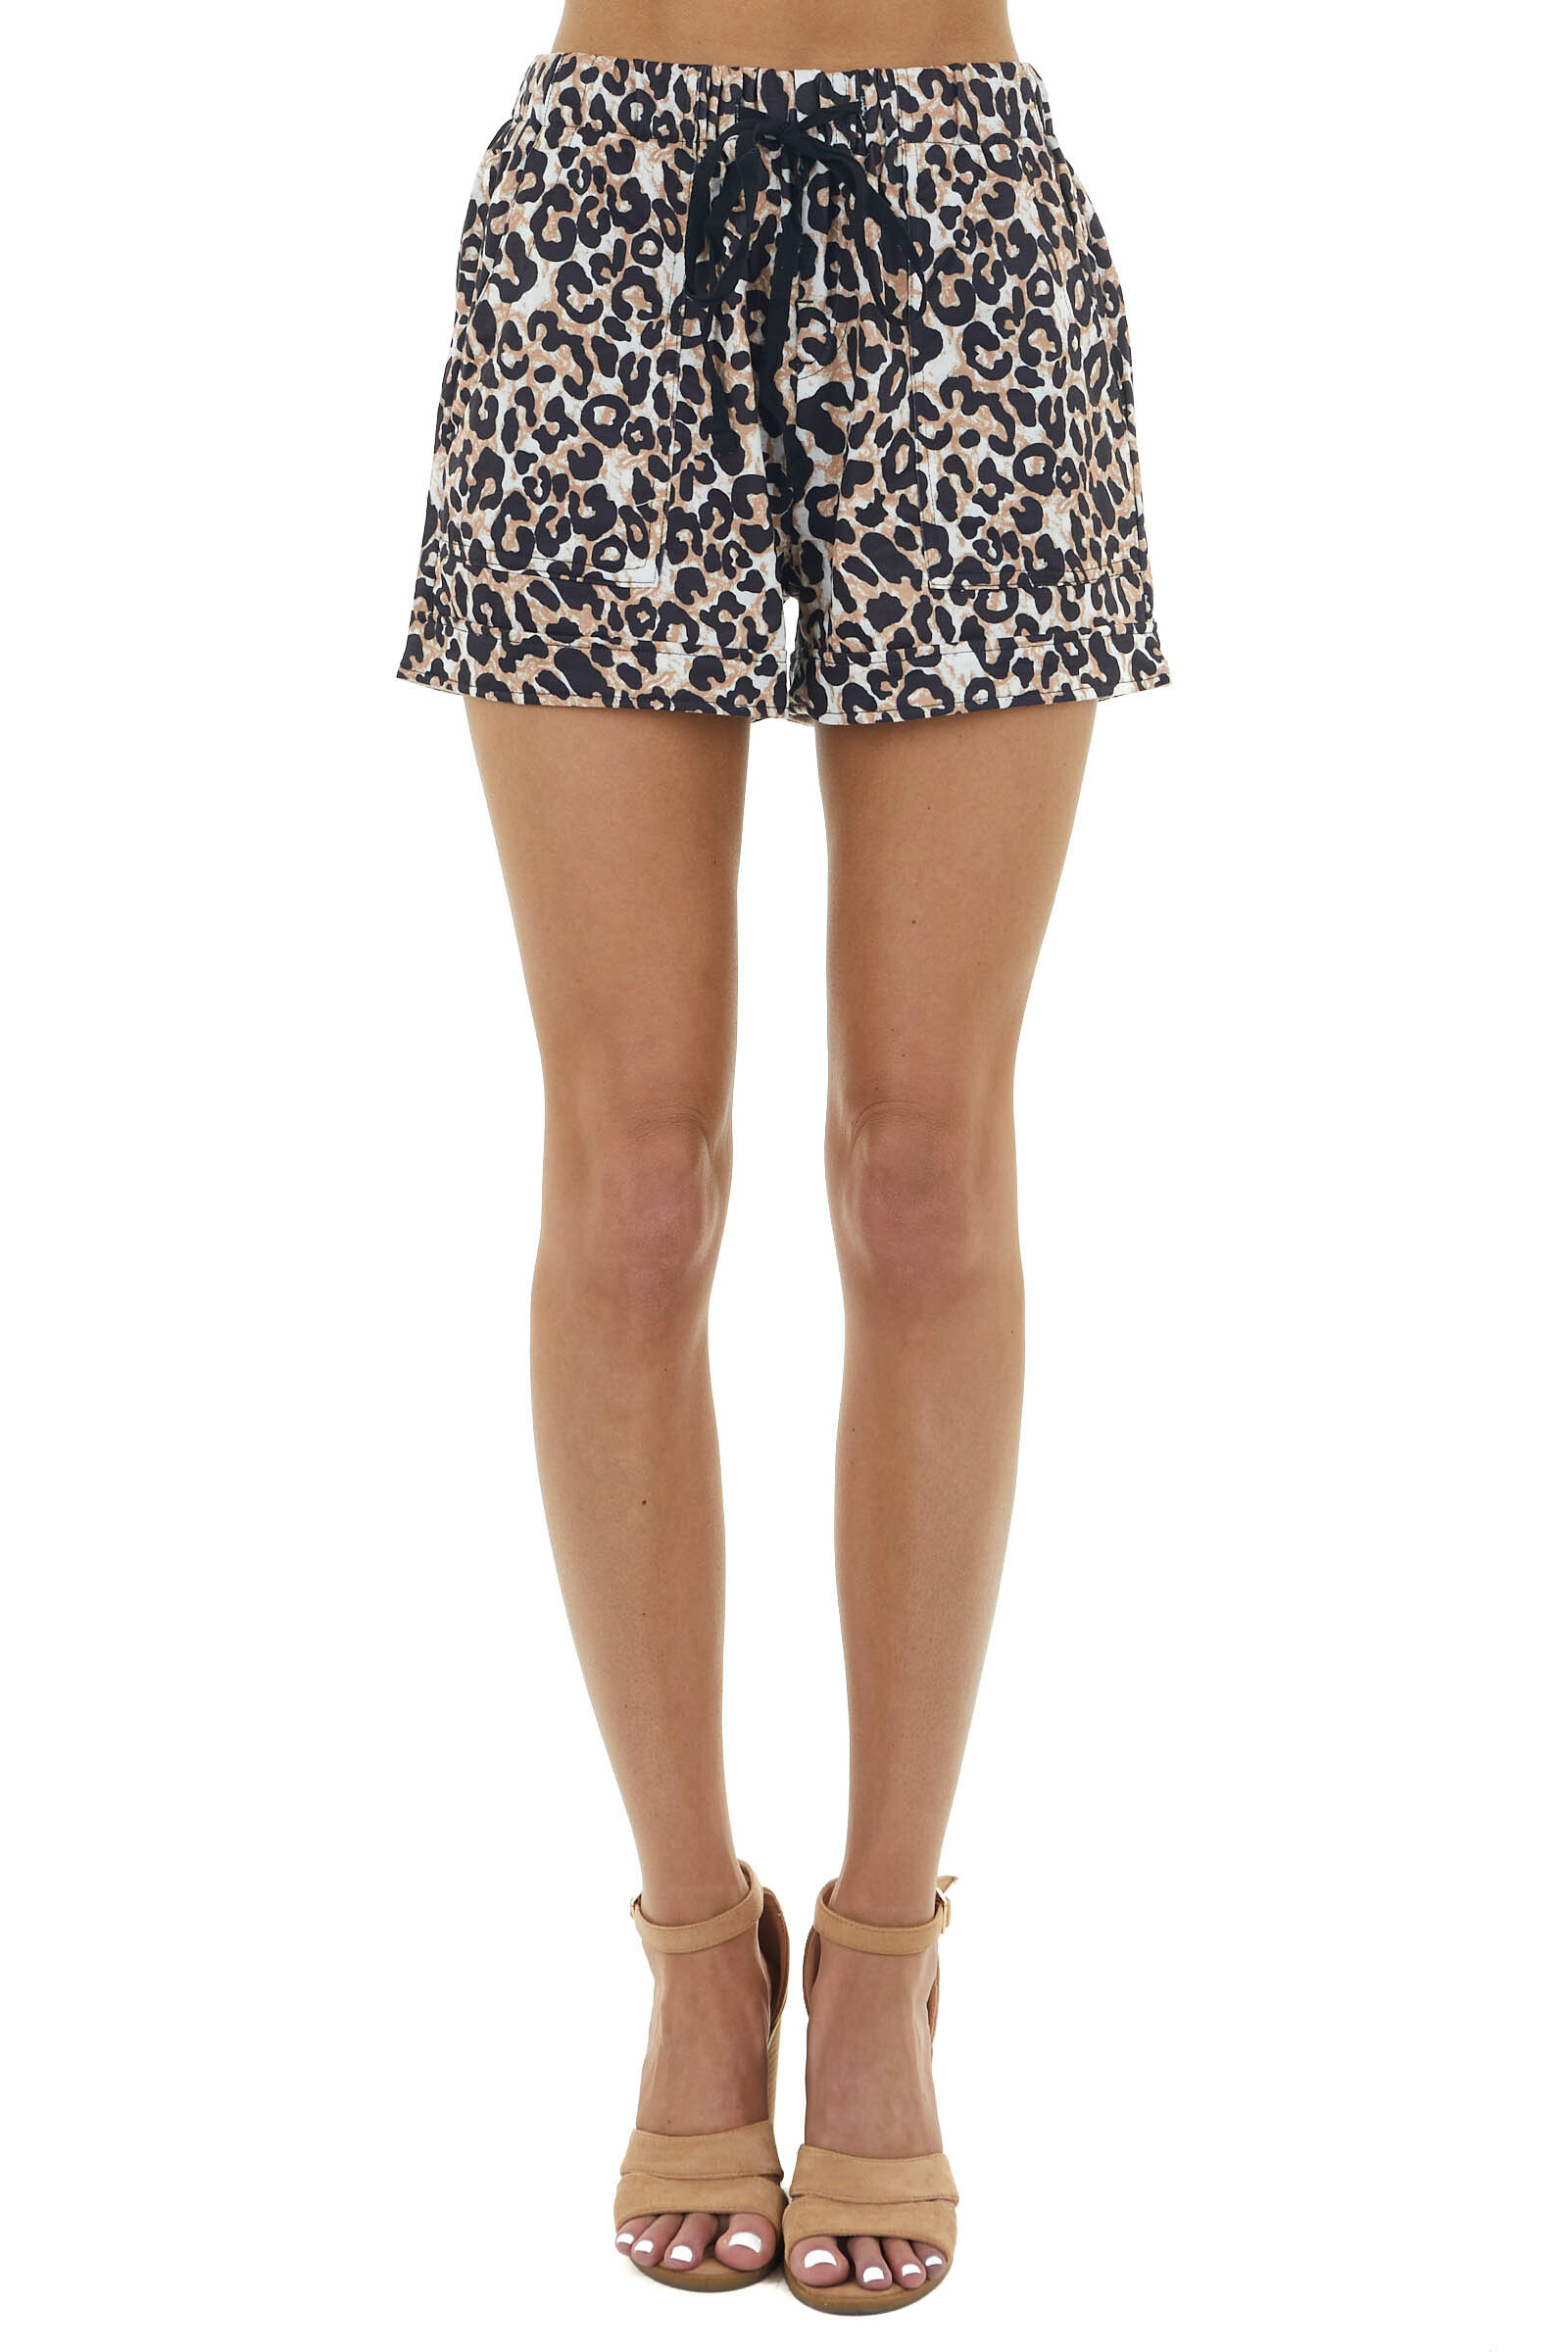 Camel Brown Leopard Print Drawstring Shorts with Pockets